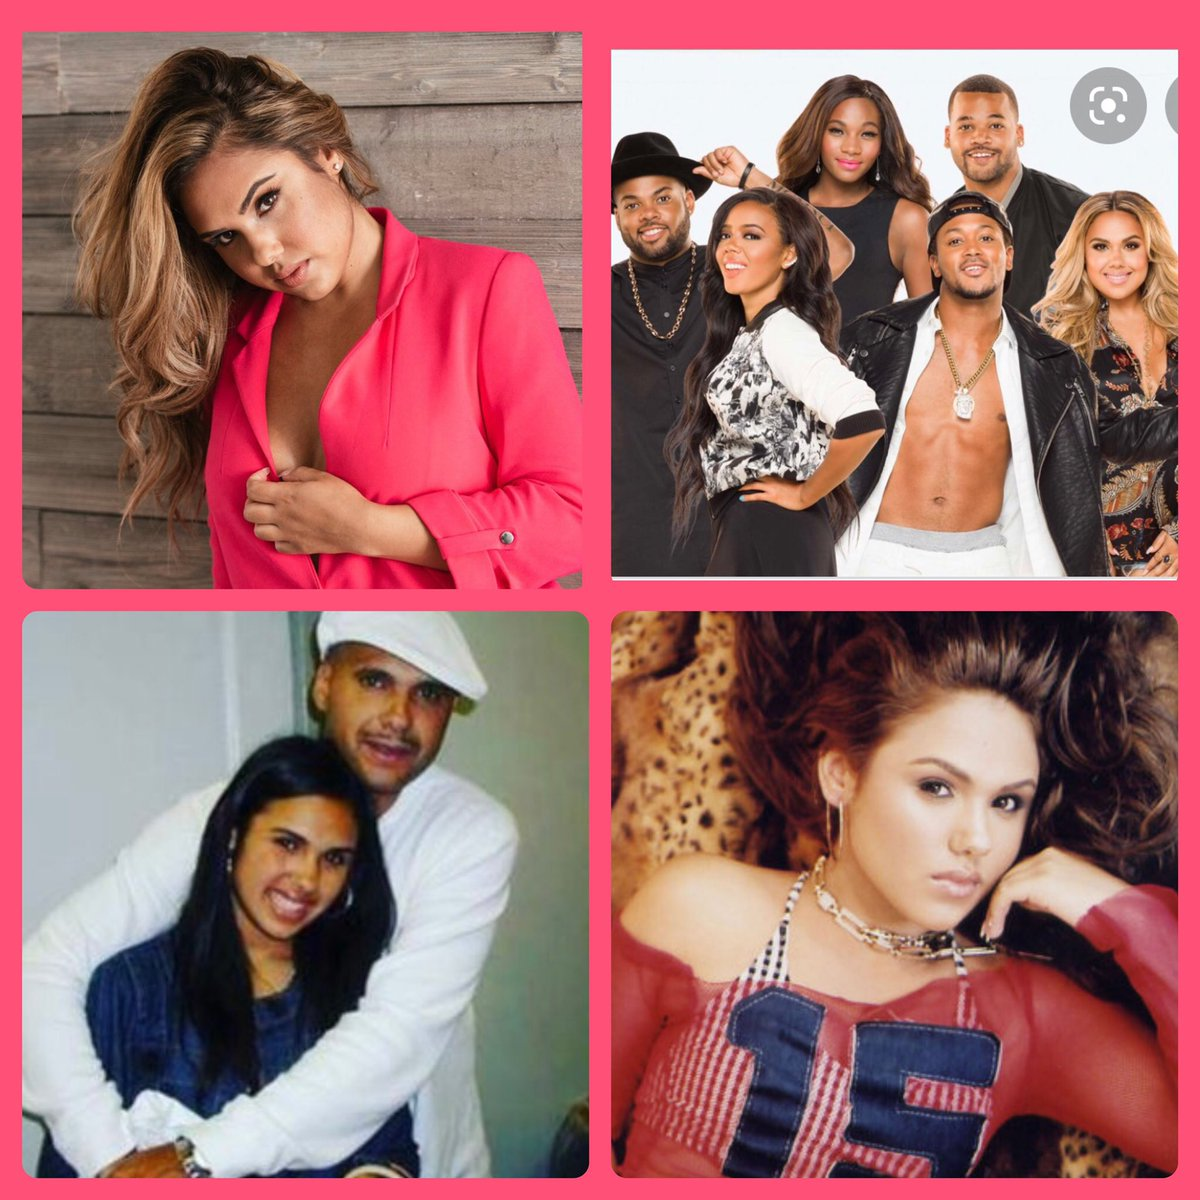 Happy 31st bday to singer and tv personality Kristinia Debarge! She is the daughter of James Debarge! #kristiniadebarge #happybirthday #jamesdebarge #debarge #growinguphiphop #romeomiller #saltnpepa #egyptcriss #angelasimmons #jojosimmons @kristinia 😘